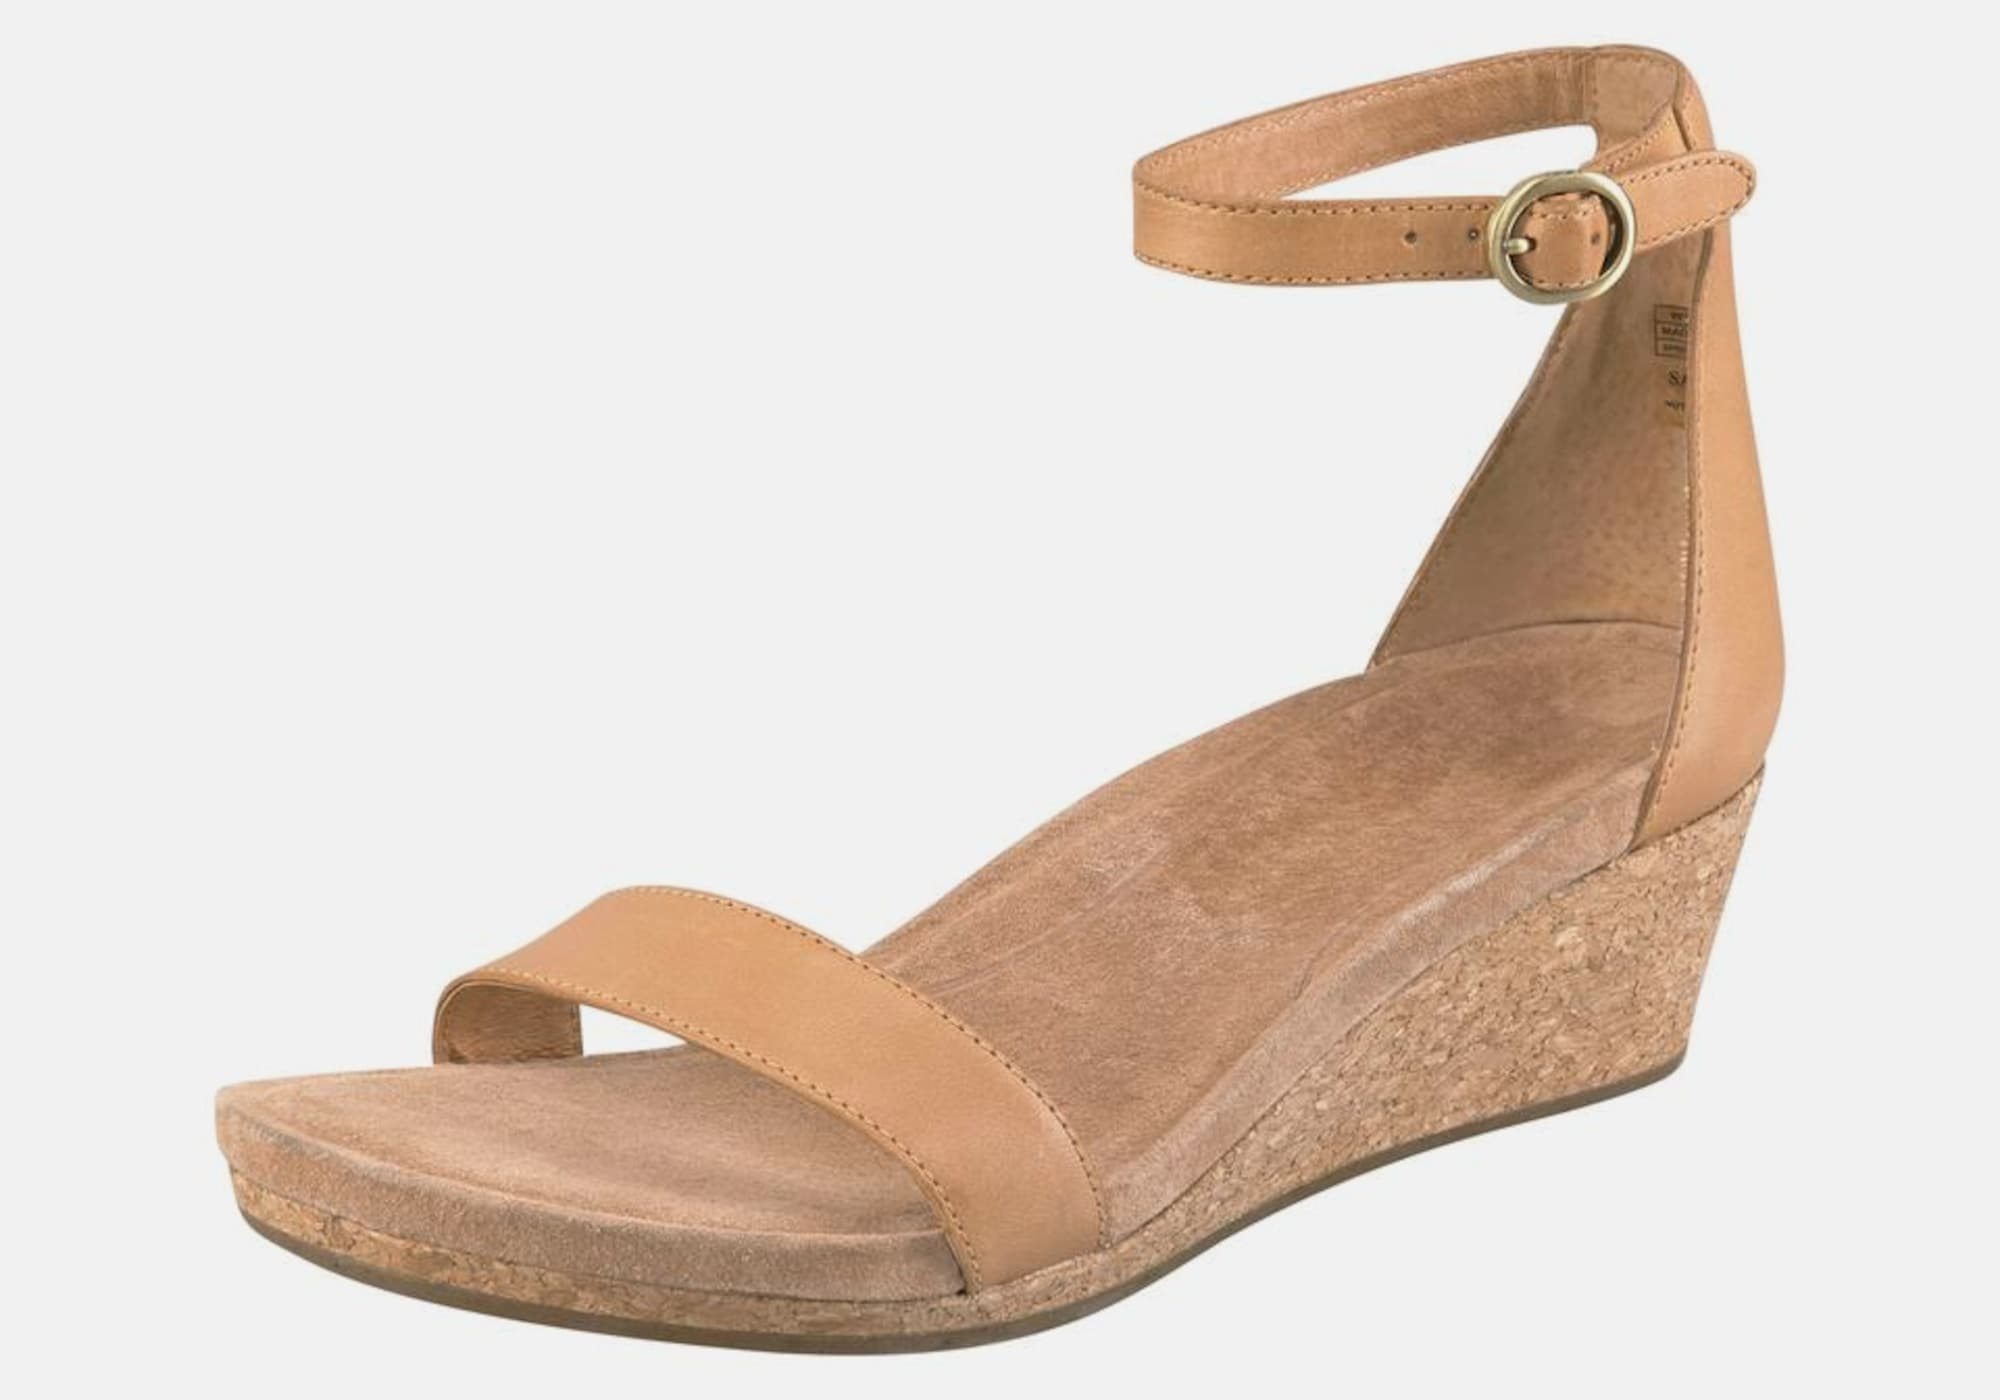 Ugg Keilsandalette Emilia In Wei 223 About You